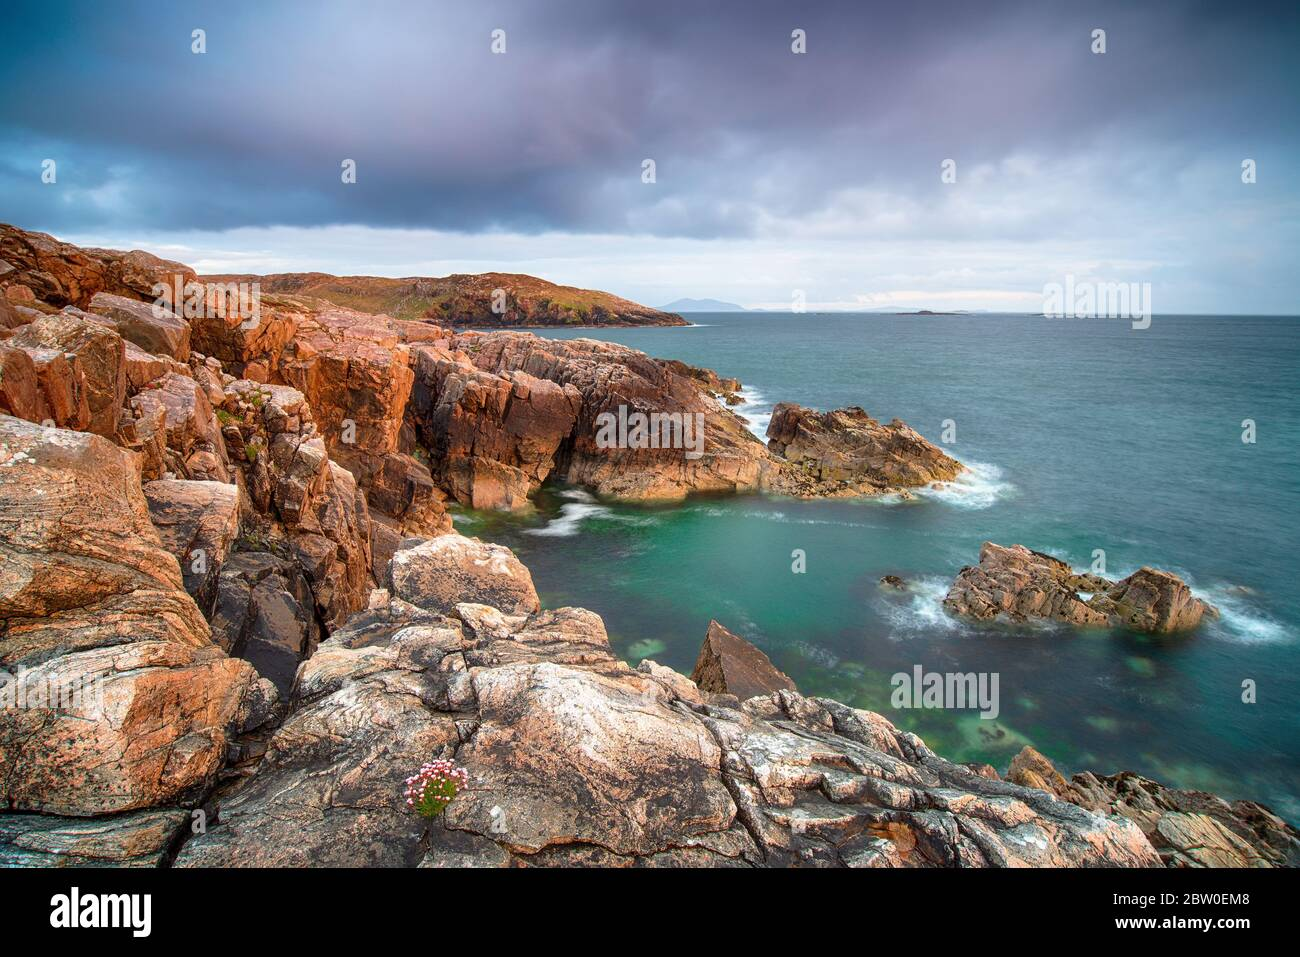 A small clump of sea Thrift clings precariously to the edge of rugged cliifs at Hushinish on the Isle of Harris in the Outer Hebrides of Scotland Stock Photo